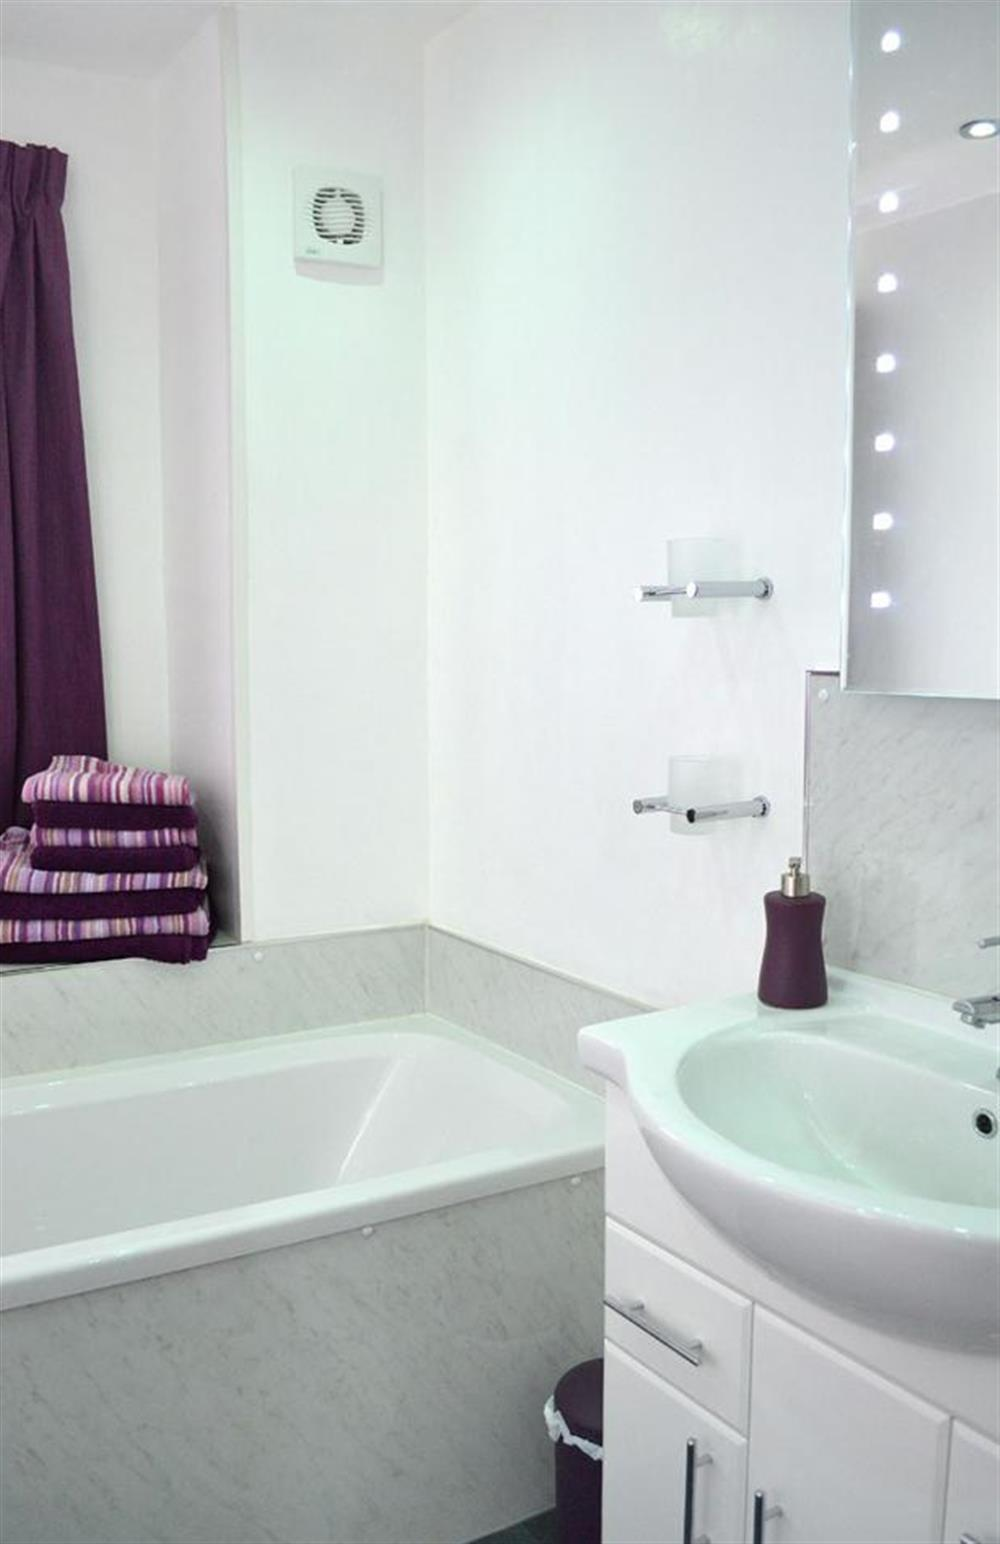 Another view of the bathroom at 1C Mayflower Court, Dartmouth